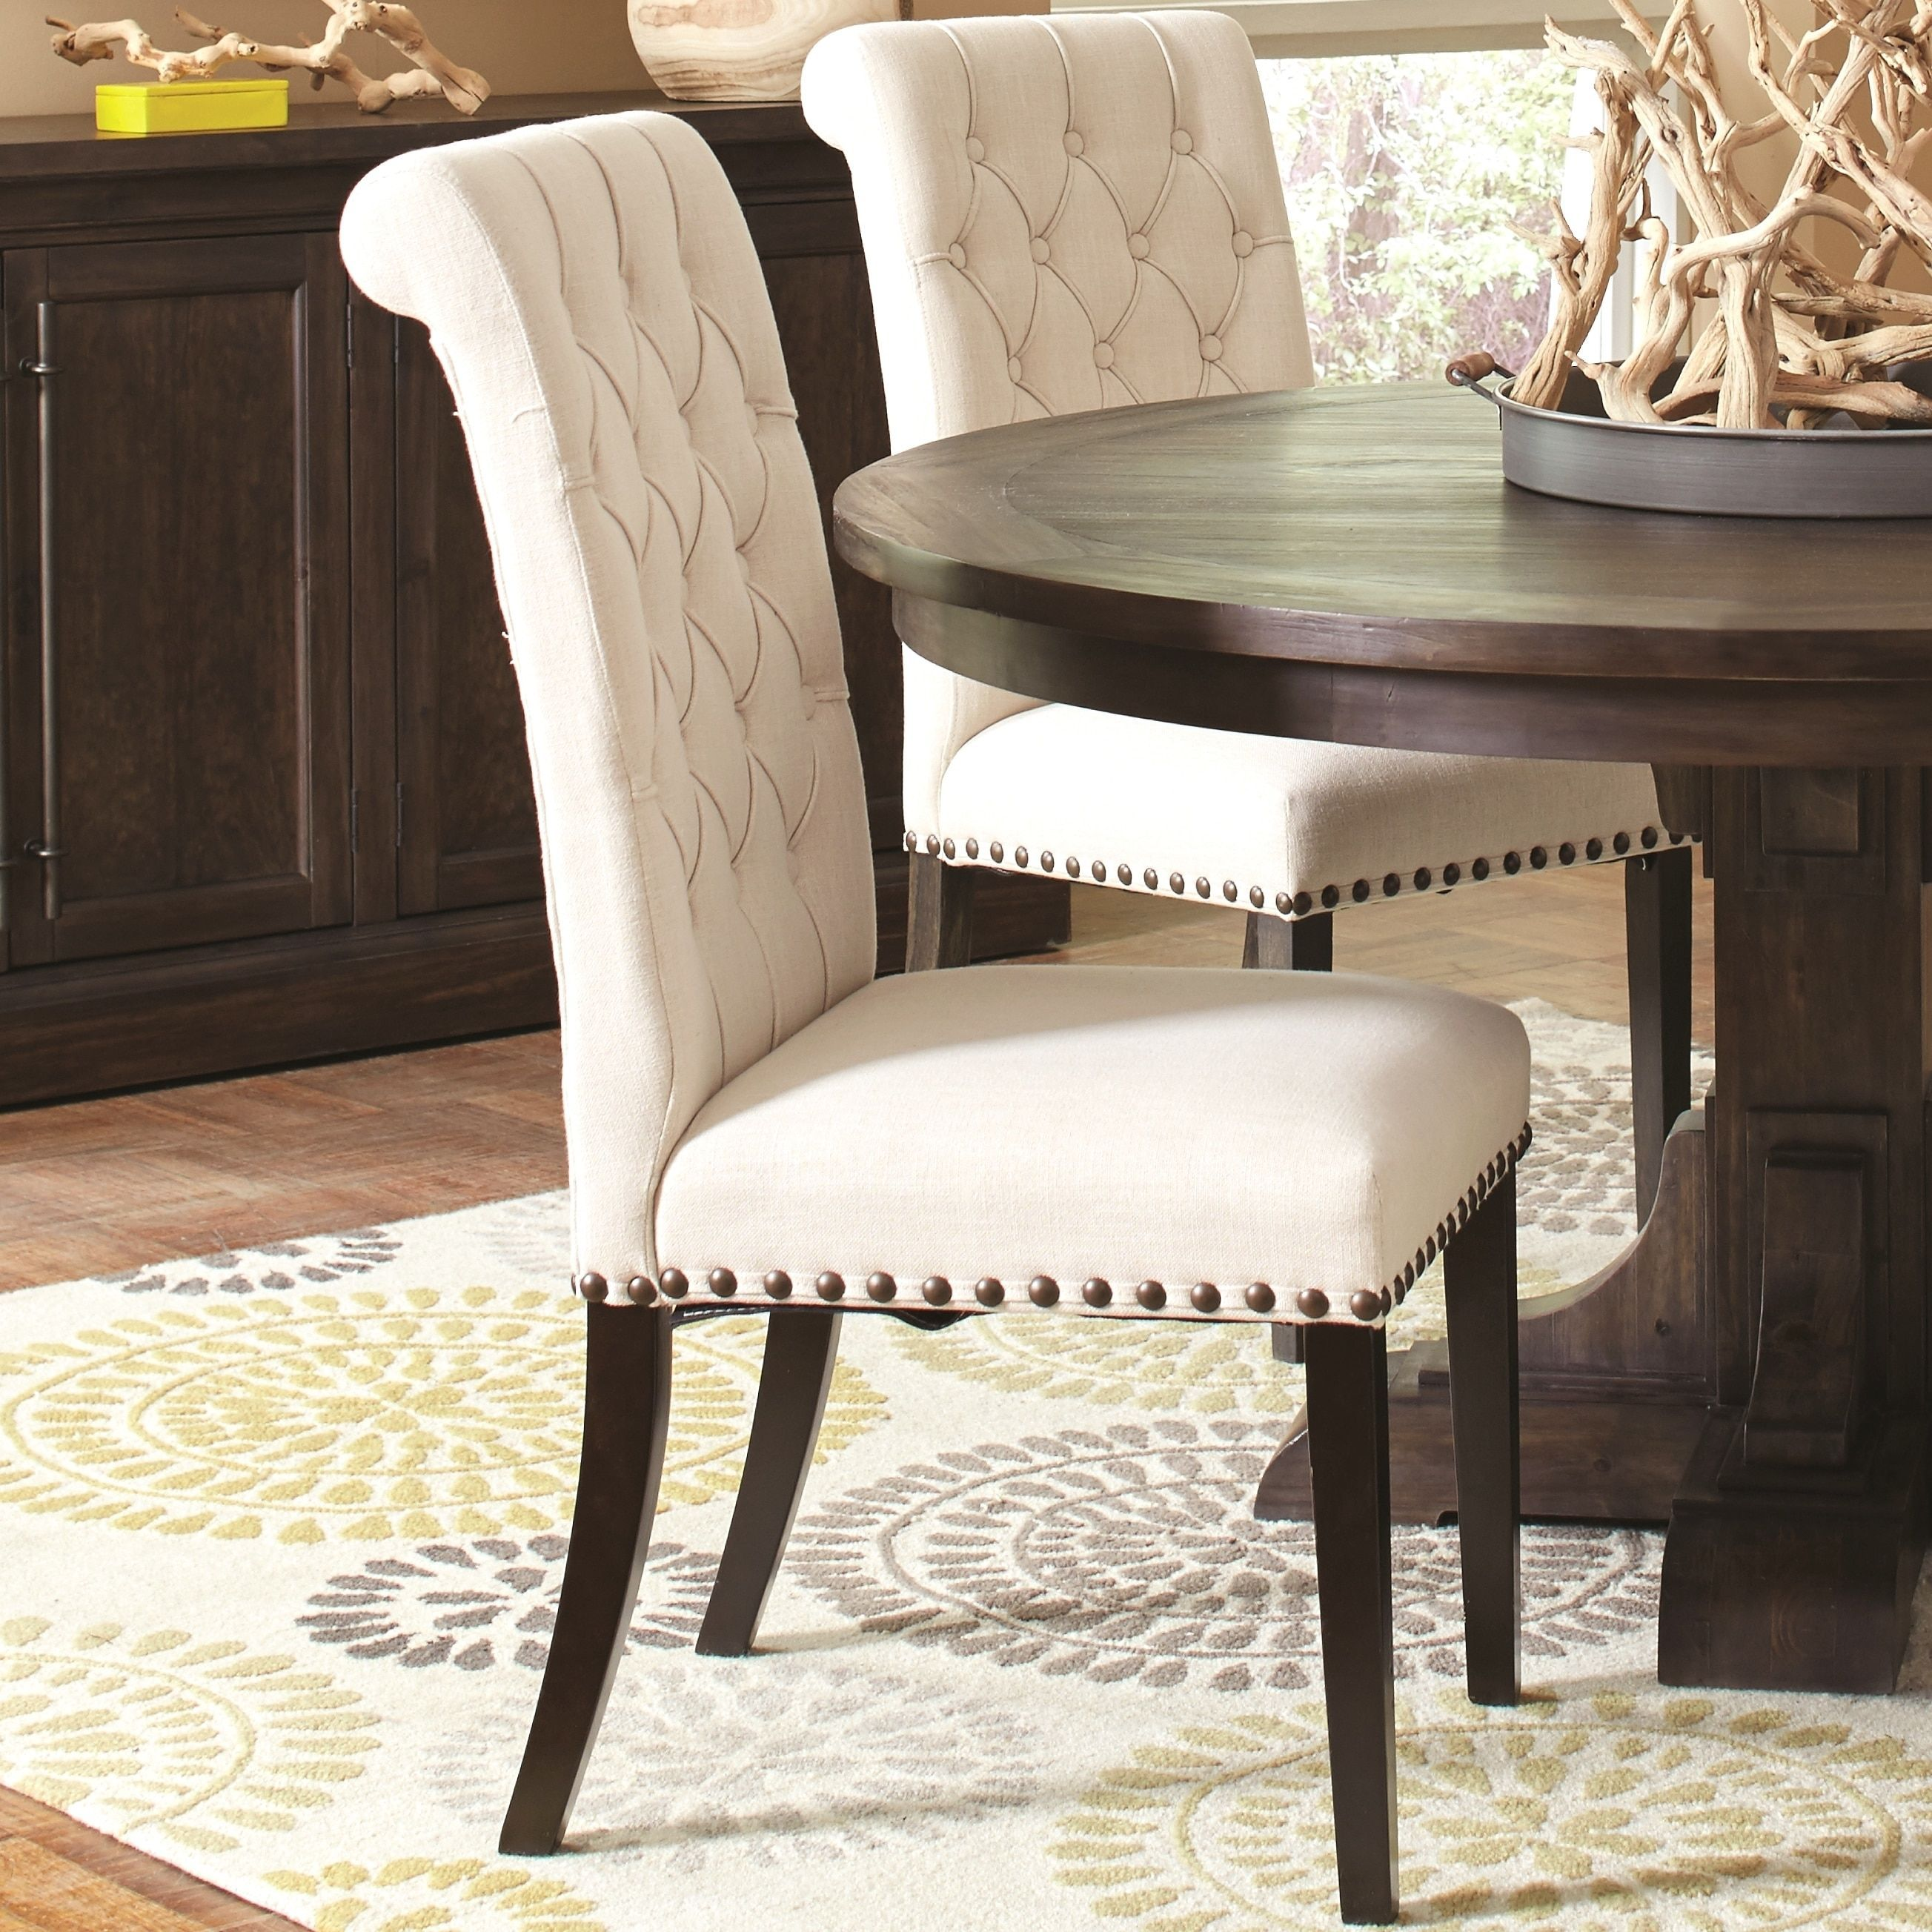 Decorative Rolled Back Button Tufted Chairs With Nailhead Trim